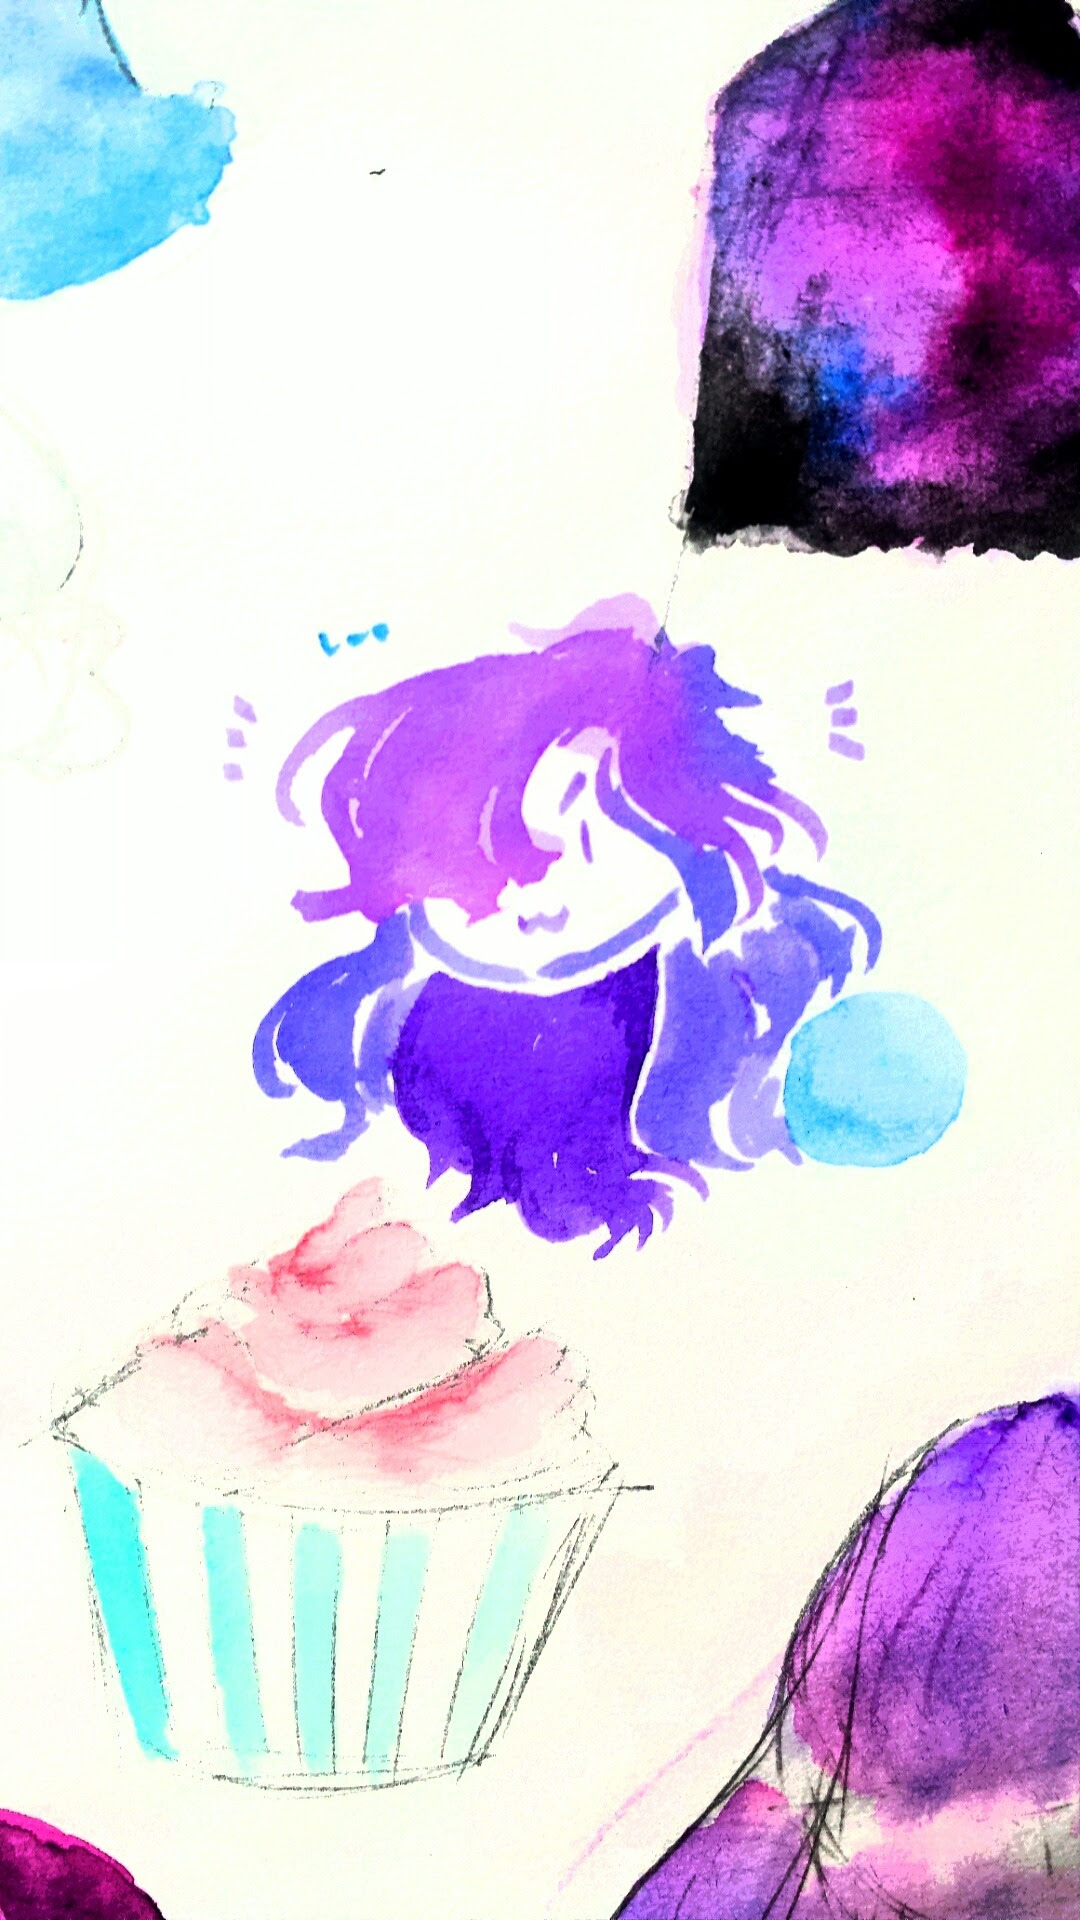 Smol watercolor amethyst plus filters